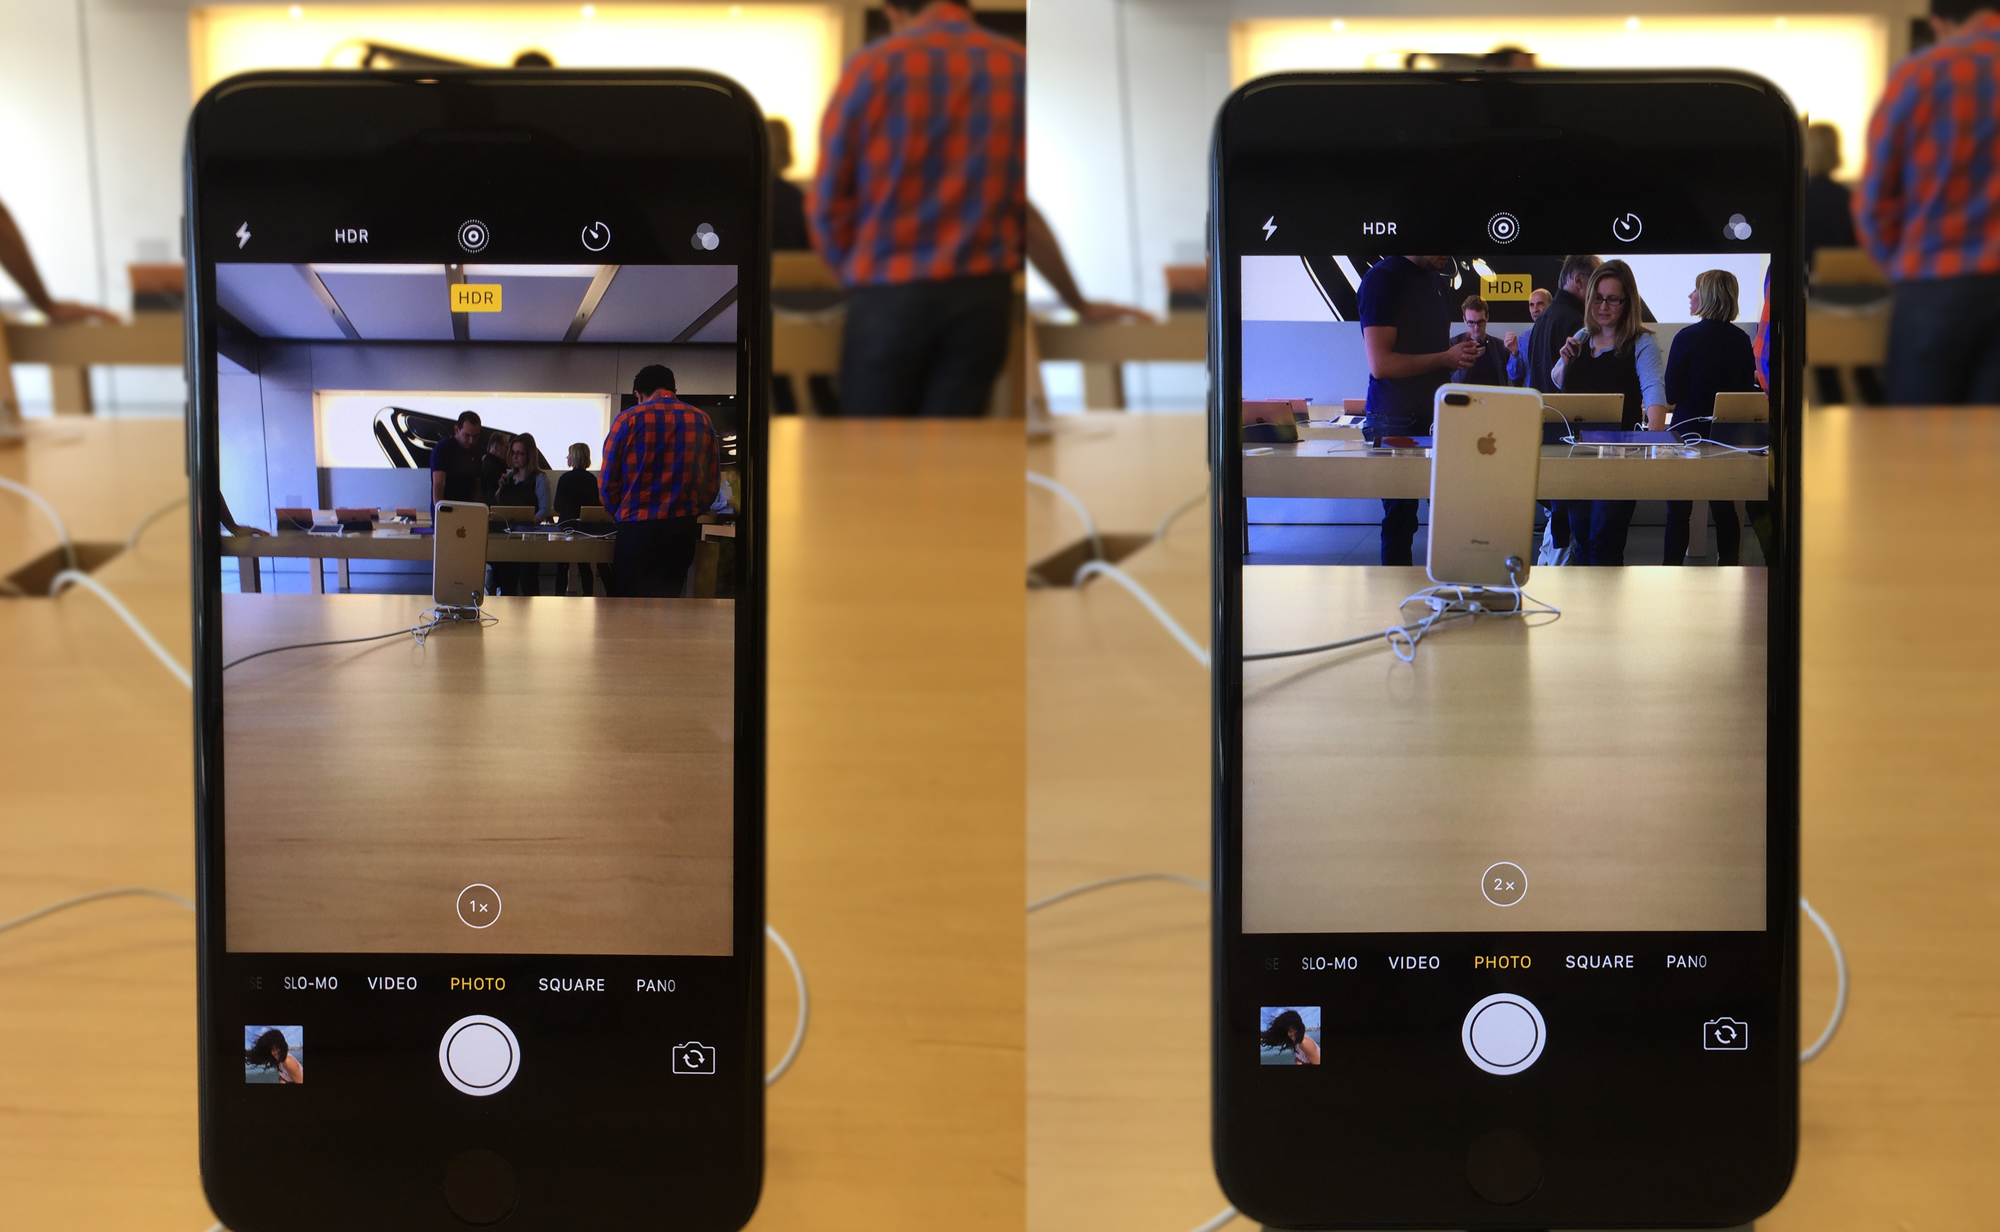 This shows the same phone looking at the same object, but the one on the right is using the new telephoto lens. Look at how much closer it appears without losing any quality.